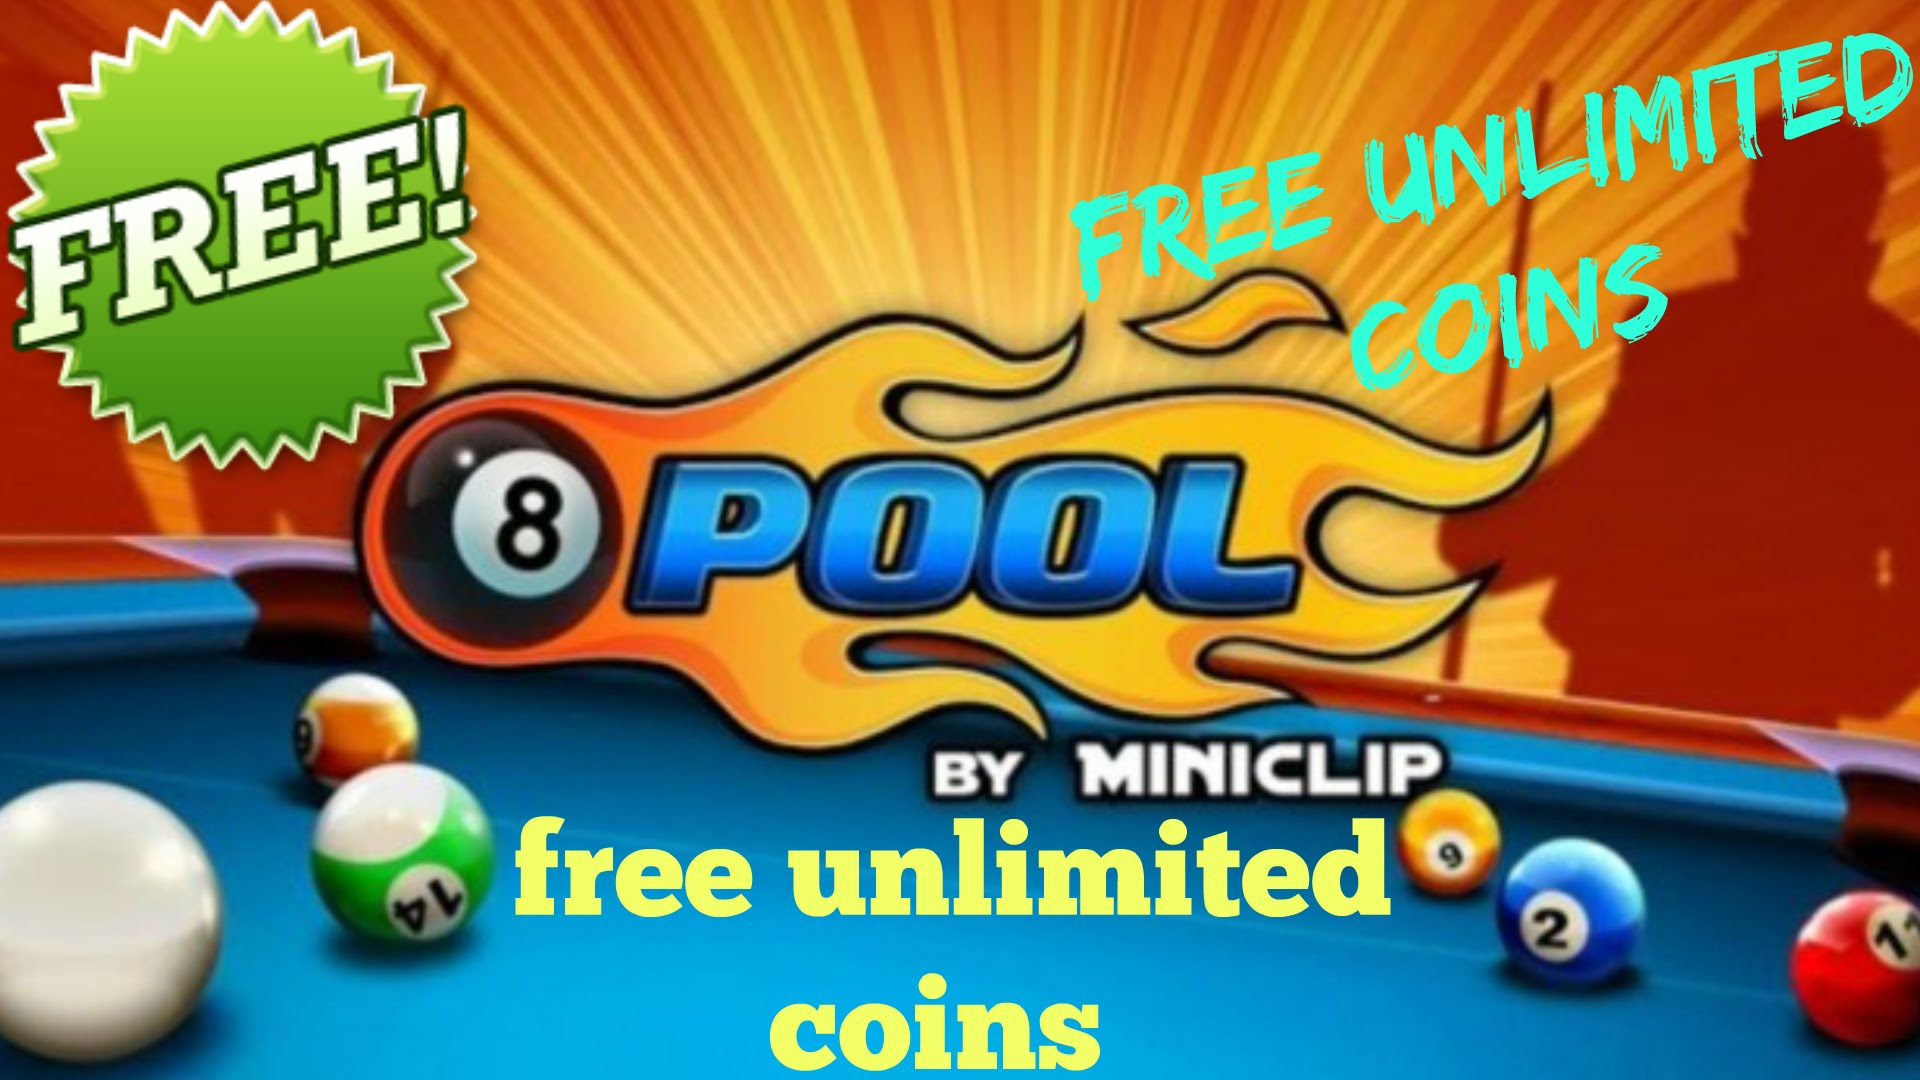 【8BALL.XYZ 8 BALL POOL】 Cash and Coins FOR ANDROID IOS PC PLAYSTATION | 100% WORKING METHOD | GET UNLIMITED RESOURCES NOW